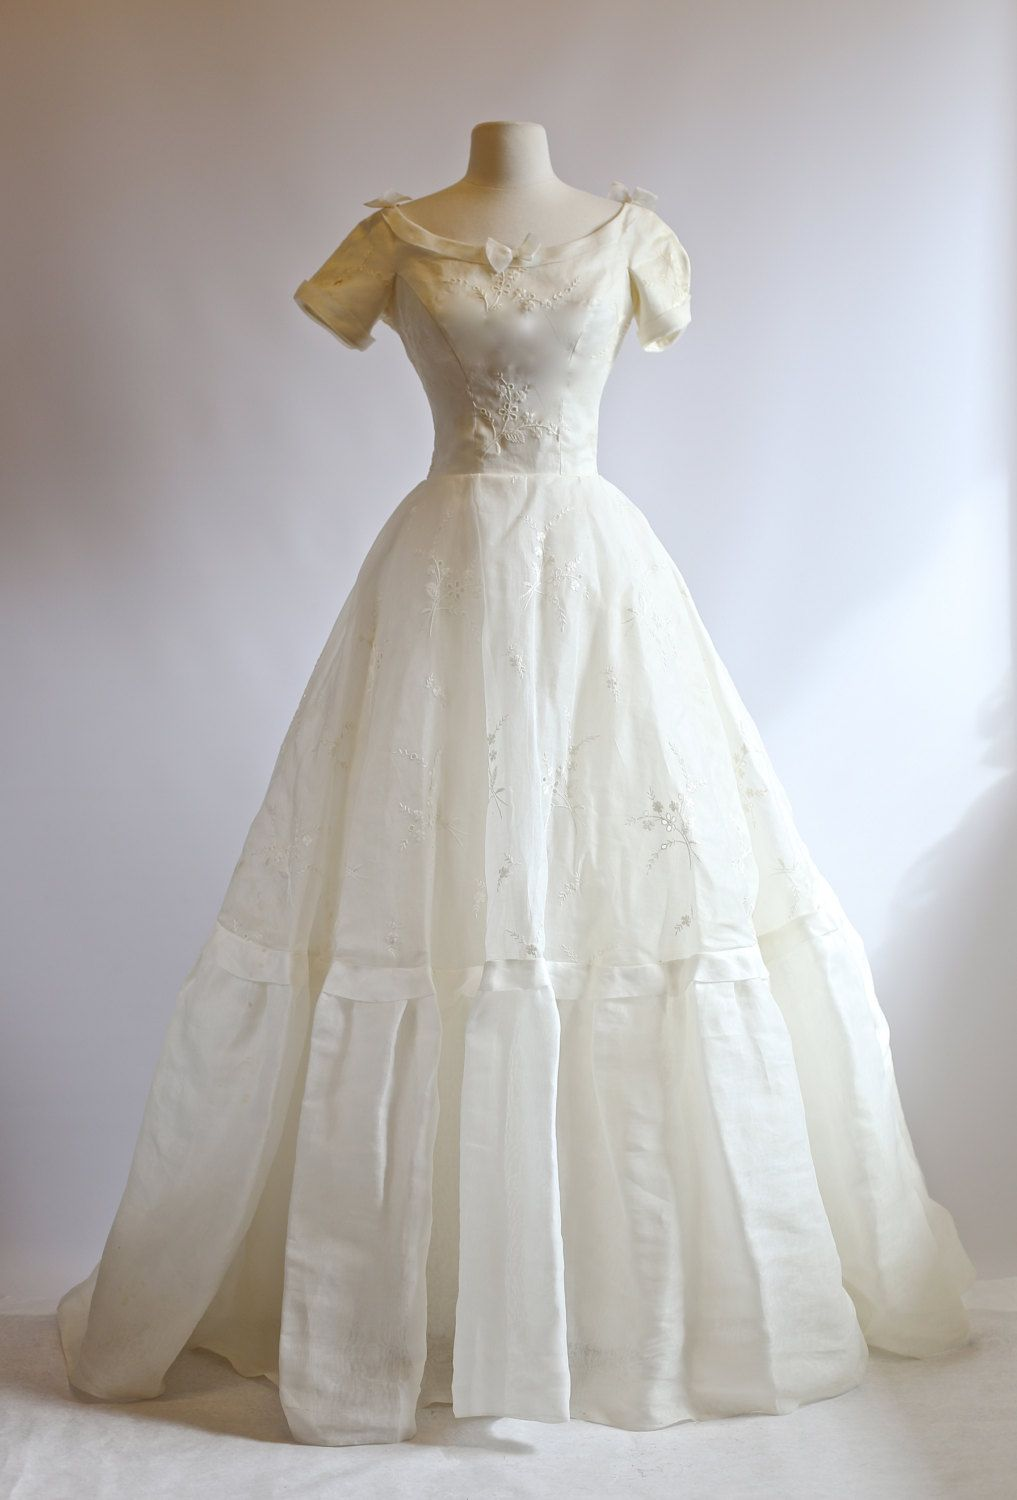 248e2c625c24 Vintage 1950s Cahill Wedding Dress ~ Vintage 50s William Cahill Eyelet  Wedding Dress ~ Vintage Cahill Bridal Gown by xtabayvintage on Etsy